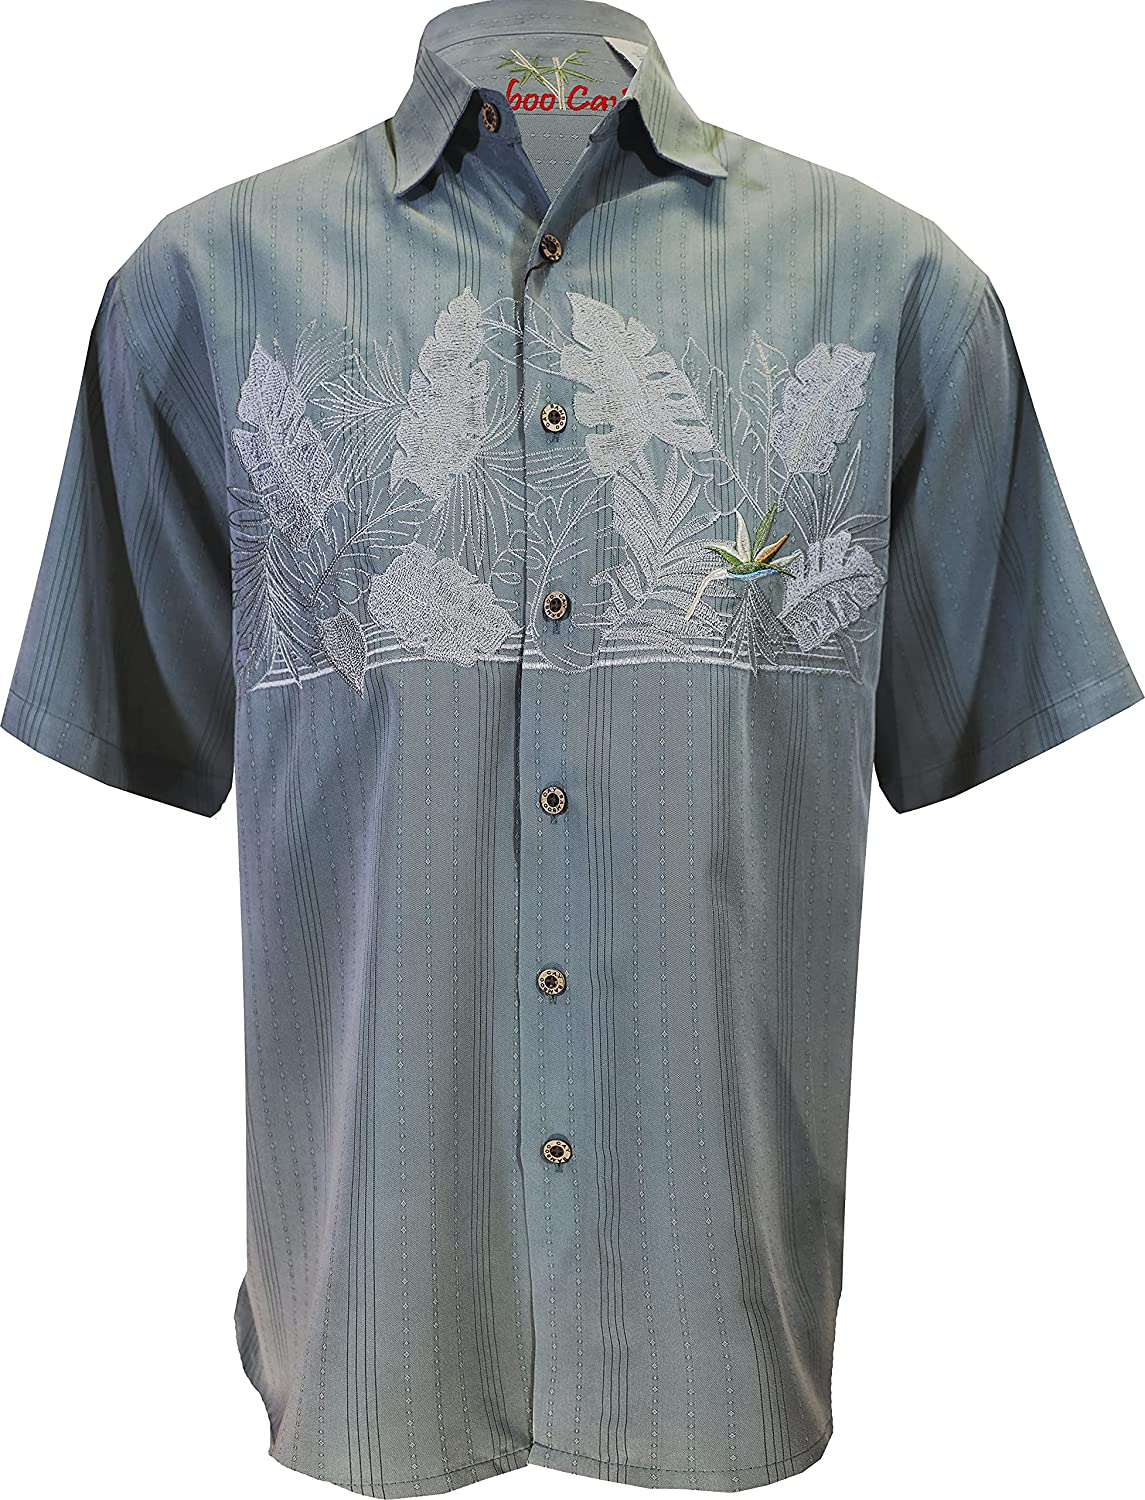 Bamboo Cay Men's Chest Bird of Paradise Tropical Style Embroidered Hawaiian Button Down Shirt